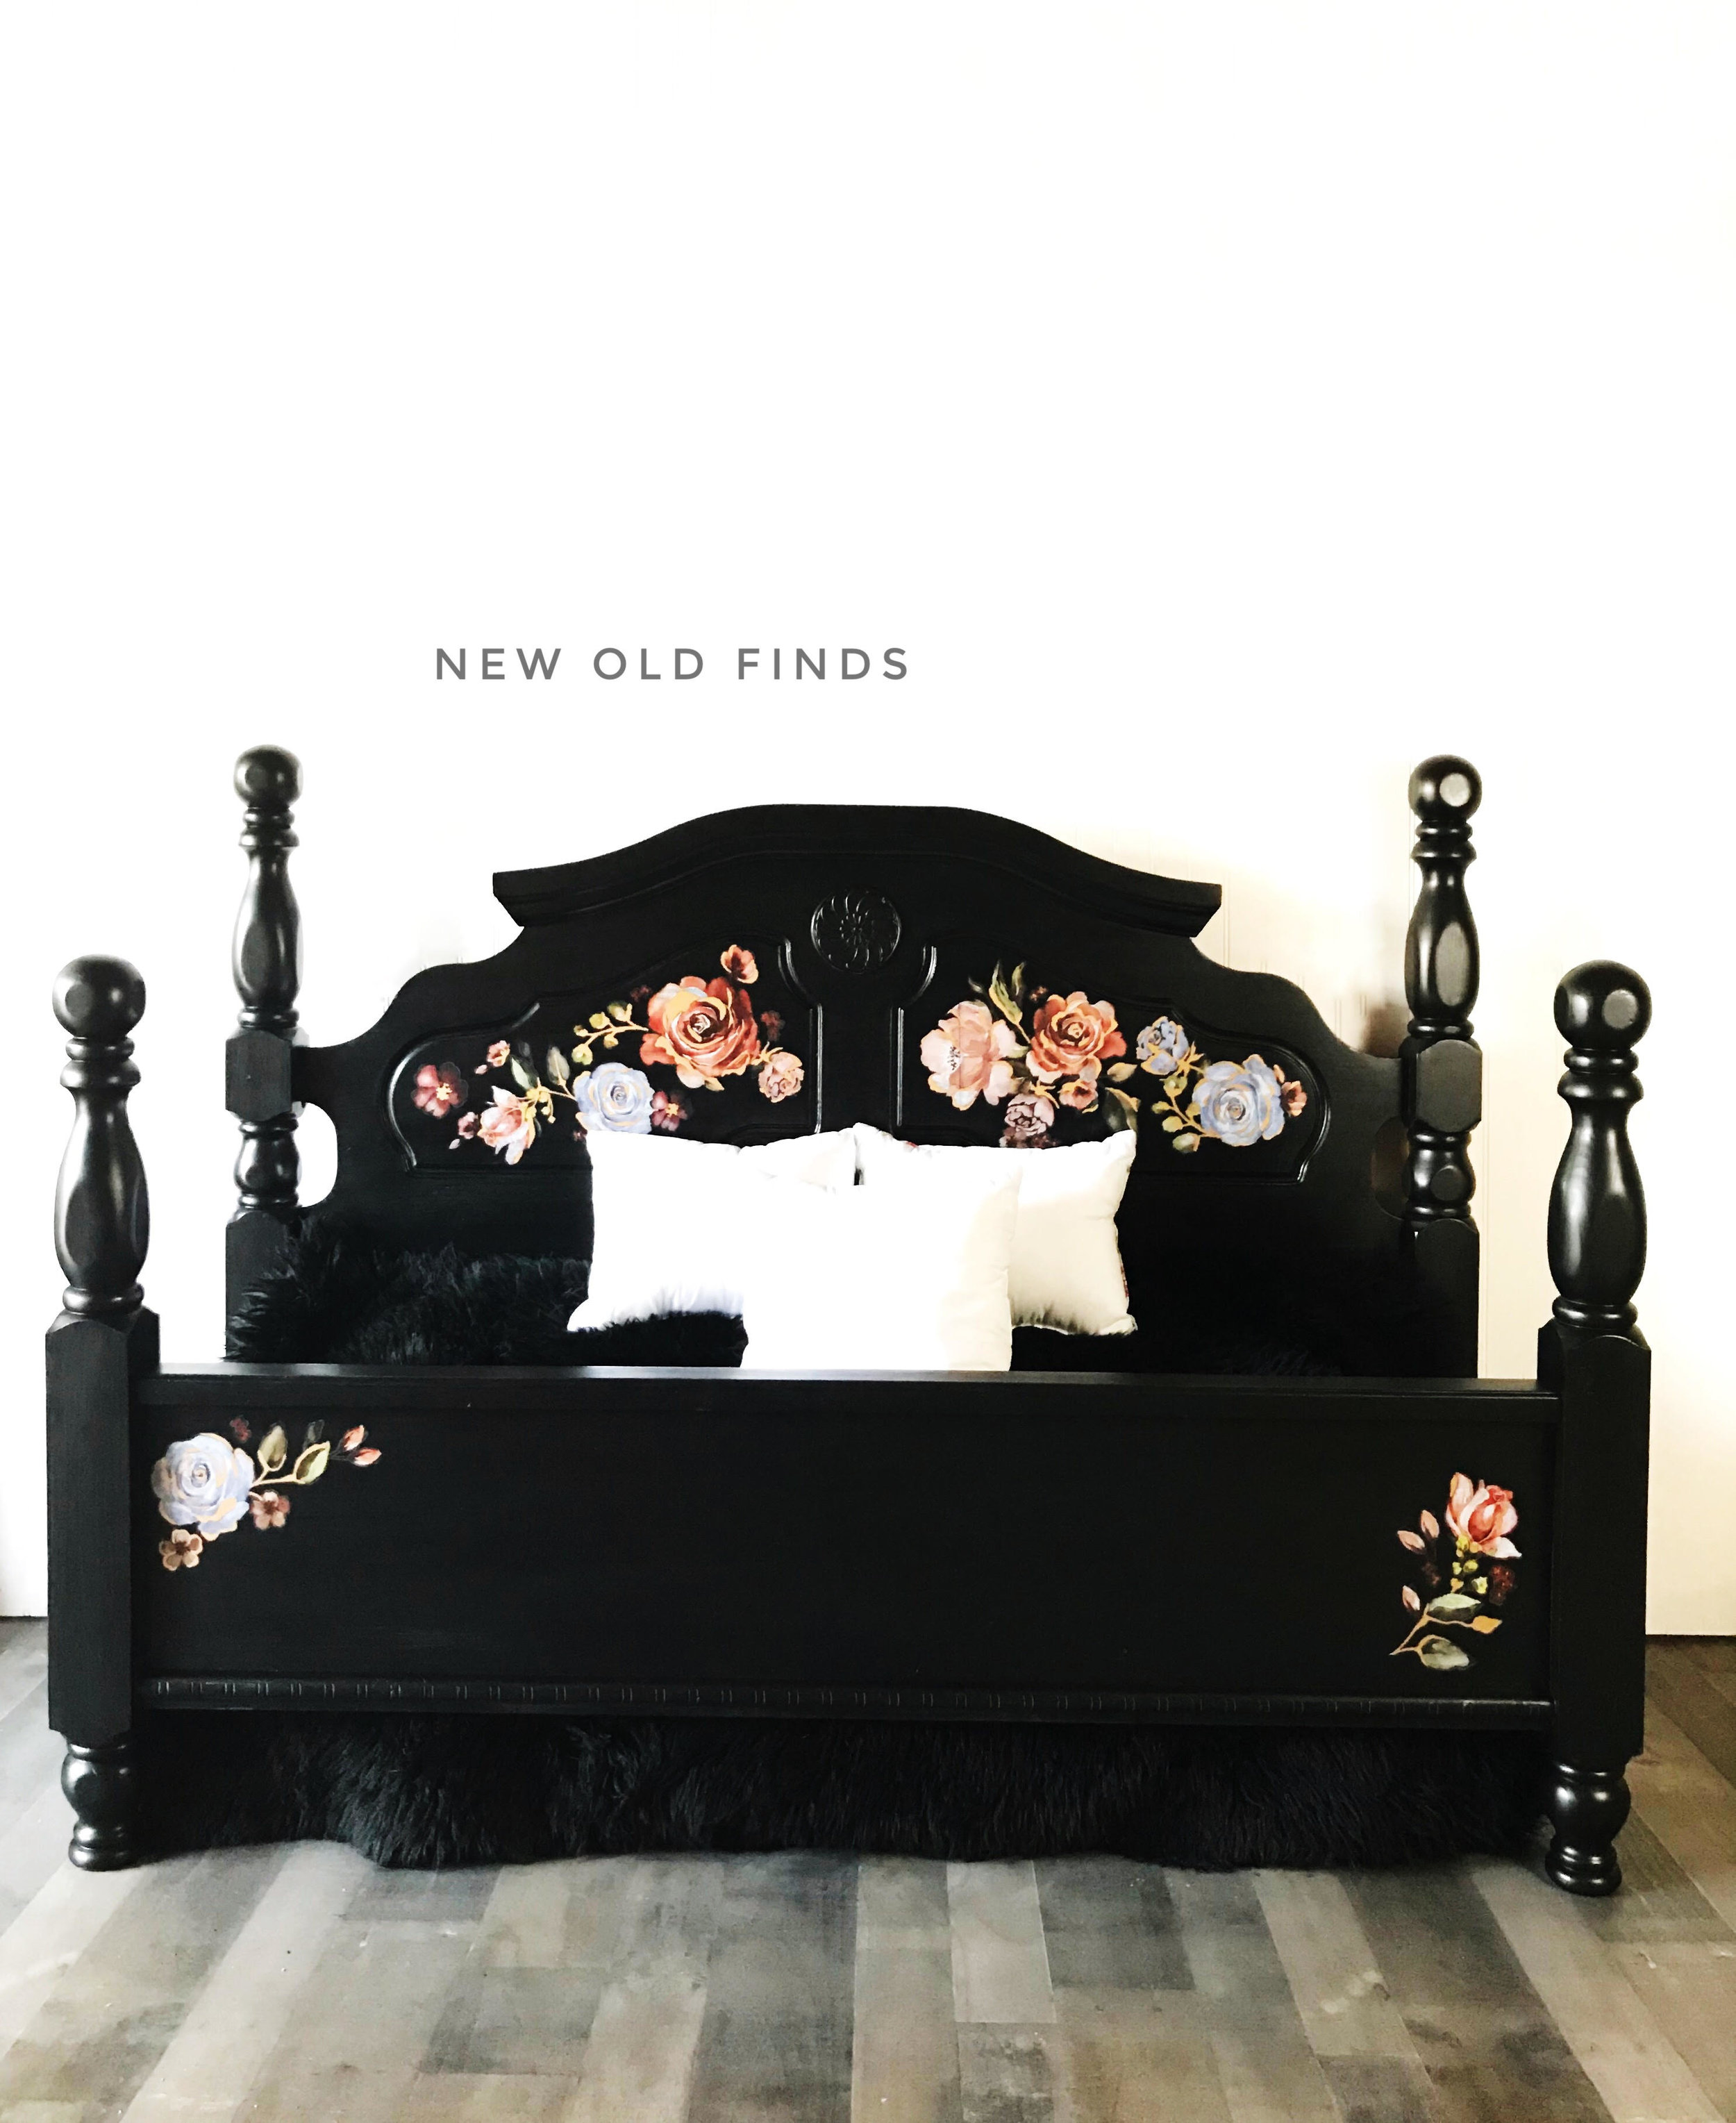 This gorgeous bed by  Roz of New Old Finds  uses the new Decor Transfer™, Rose and Rouge (637057) on a dramatic black background. It has hints of copper metallic accents throughout the floral design giving it an upscale look—it's stunning!